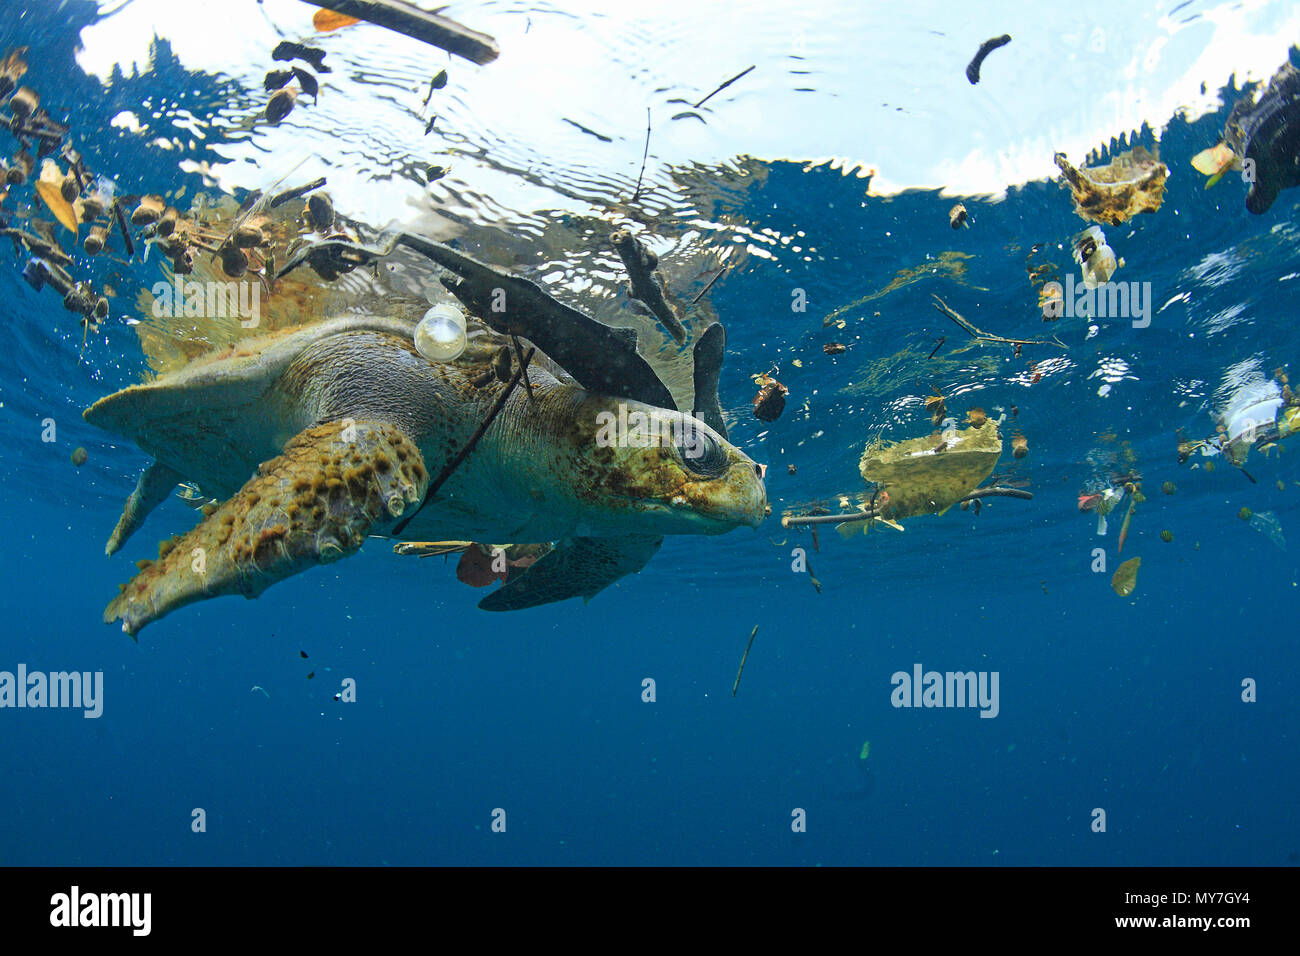 Olive ridley sea turtle (Lepidochelys olivacea) in water surrounded by plastic waste, Ile de Contador, Panama - Stock Image